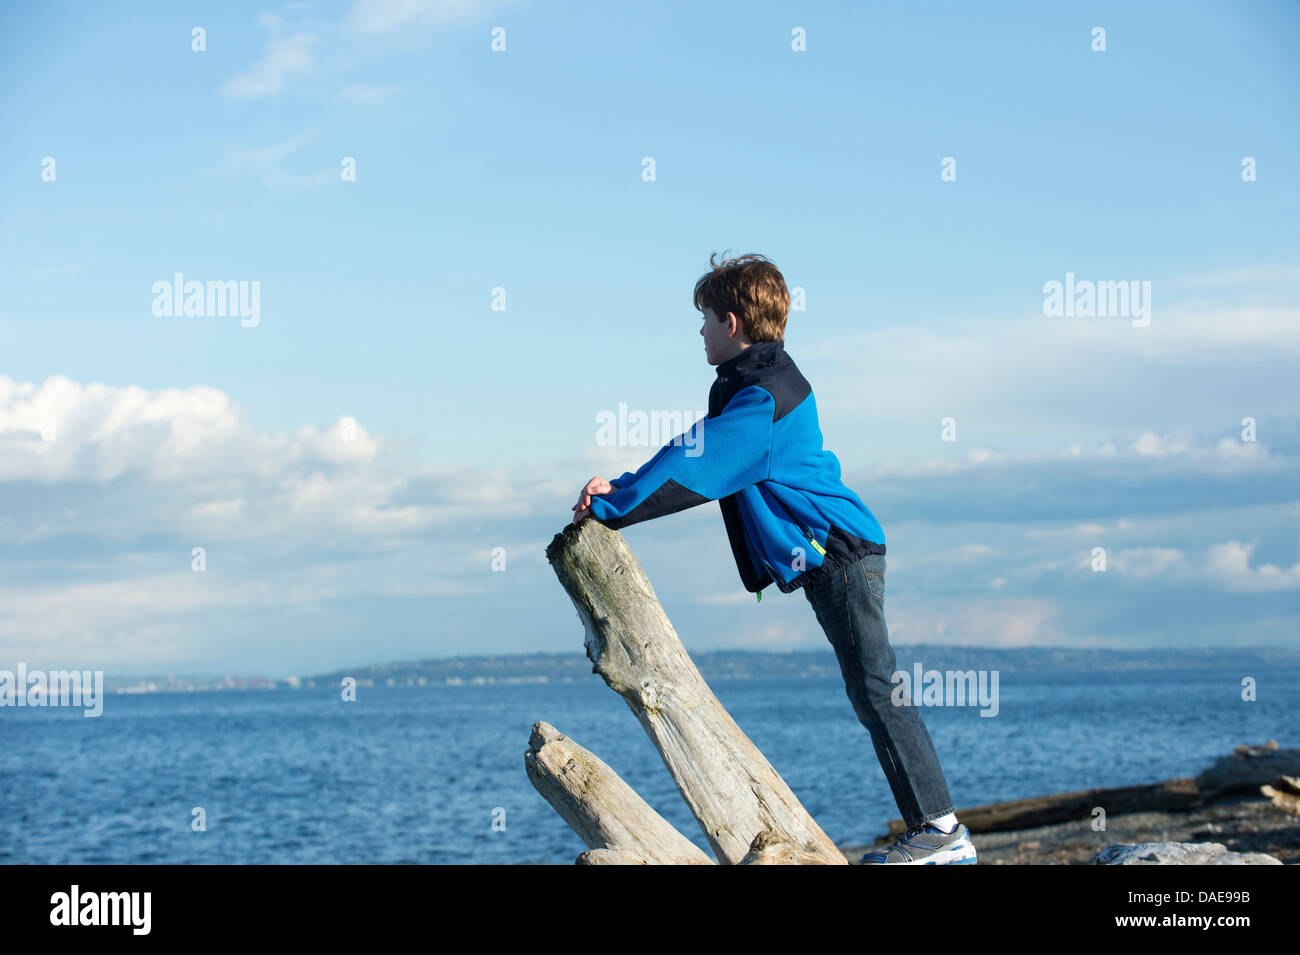 Young boy looking out from Bainbridge Island, Washington State, USA - Stock Image